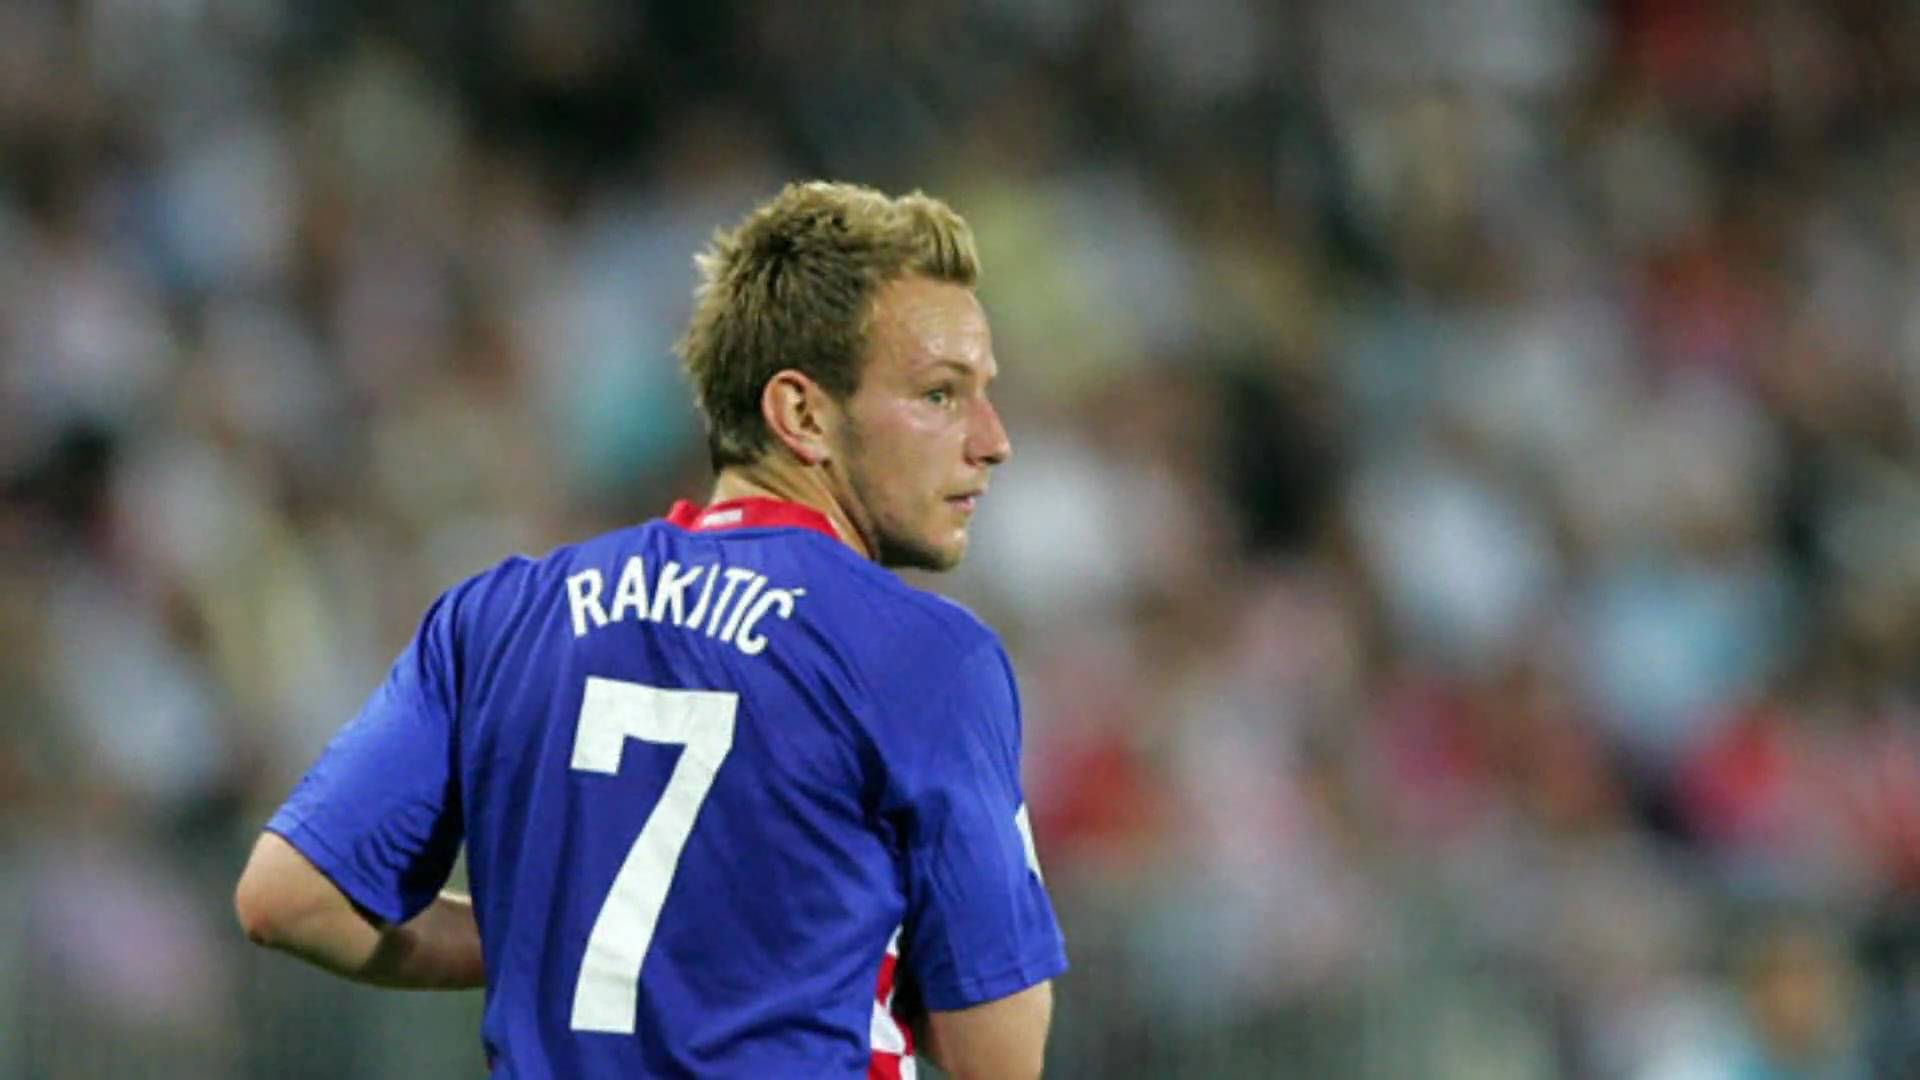 Rakitic-Croazia